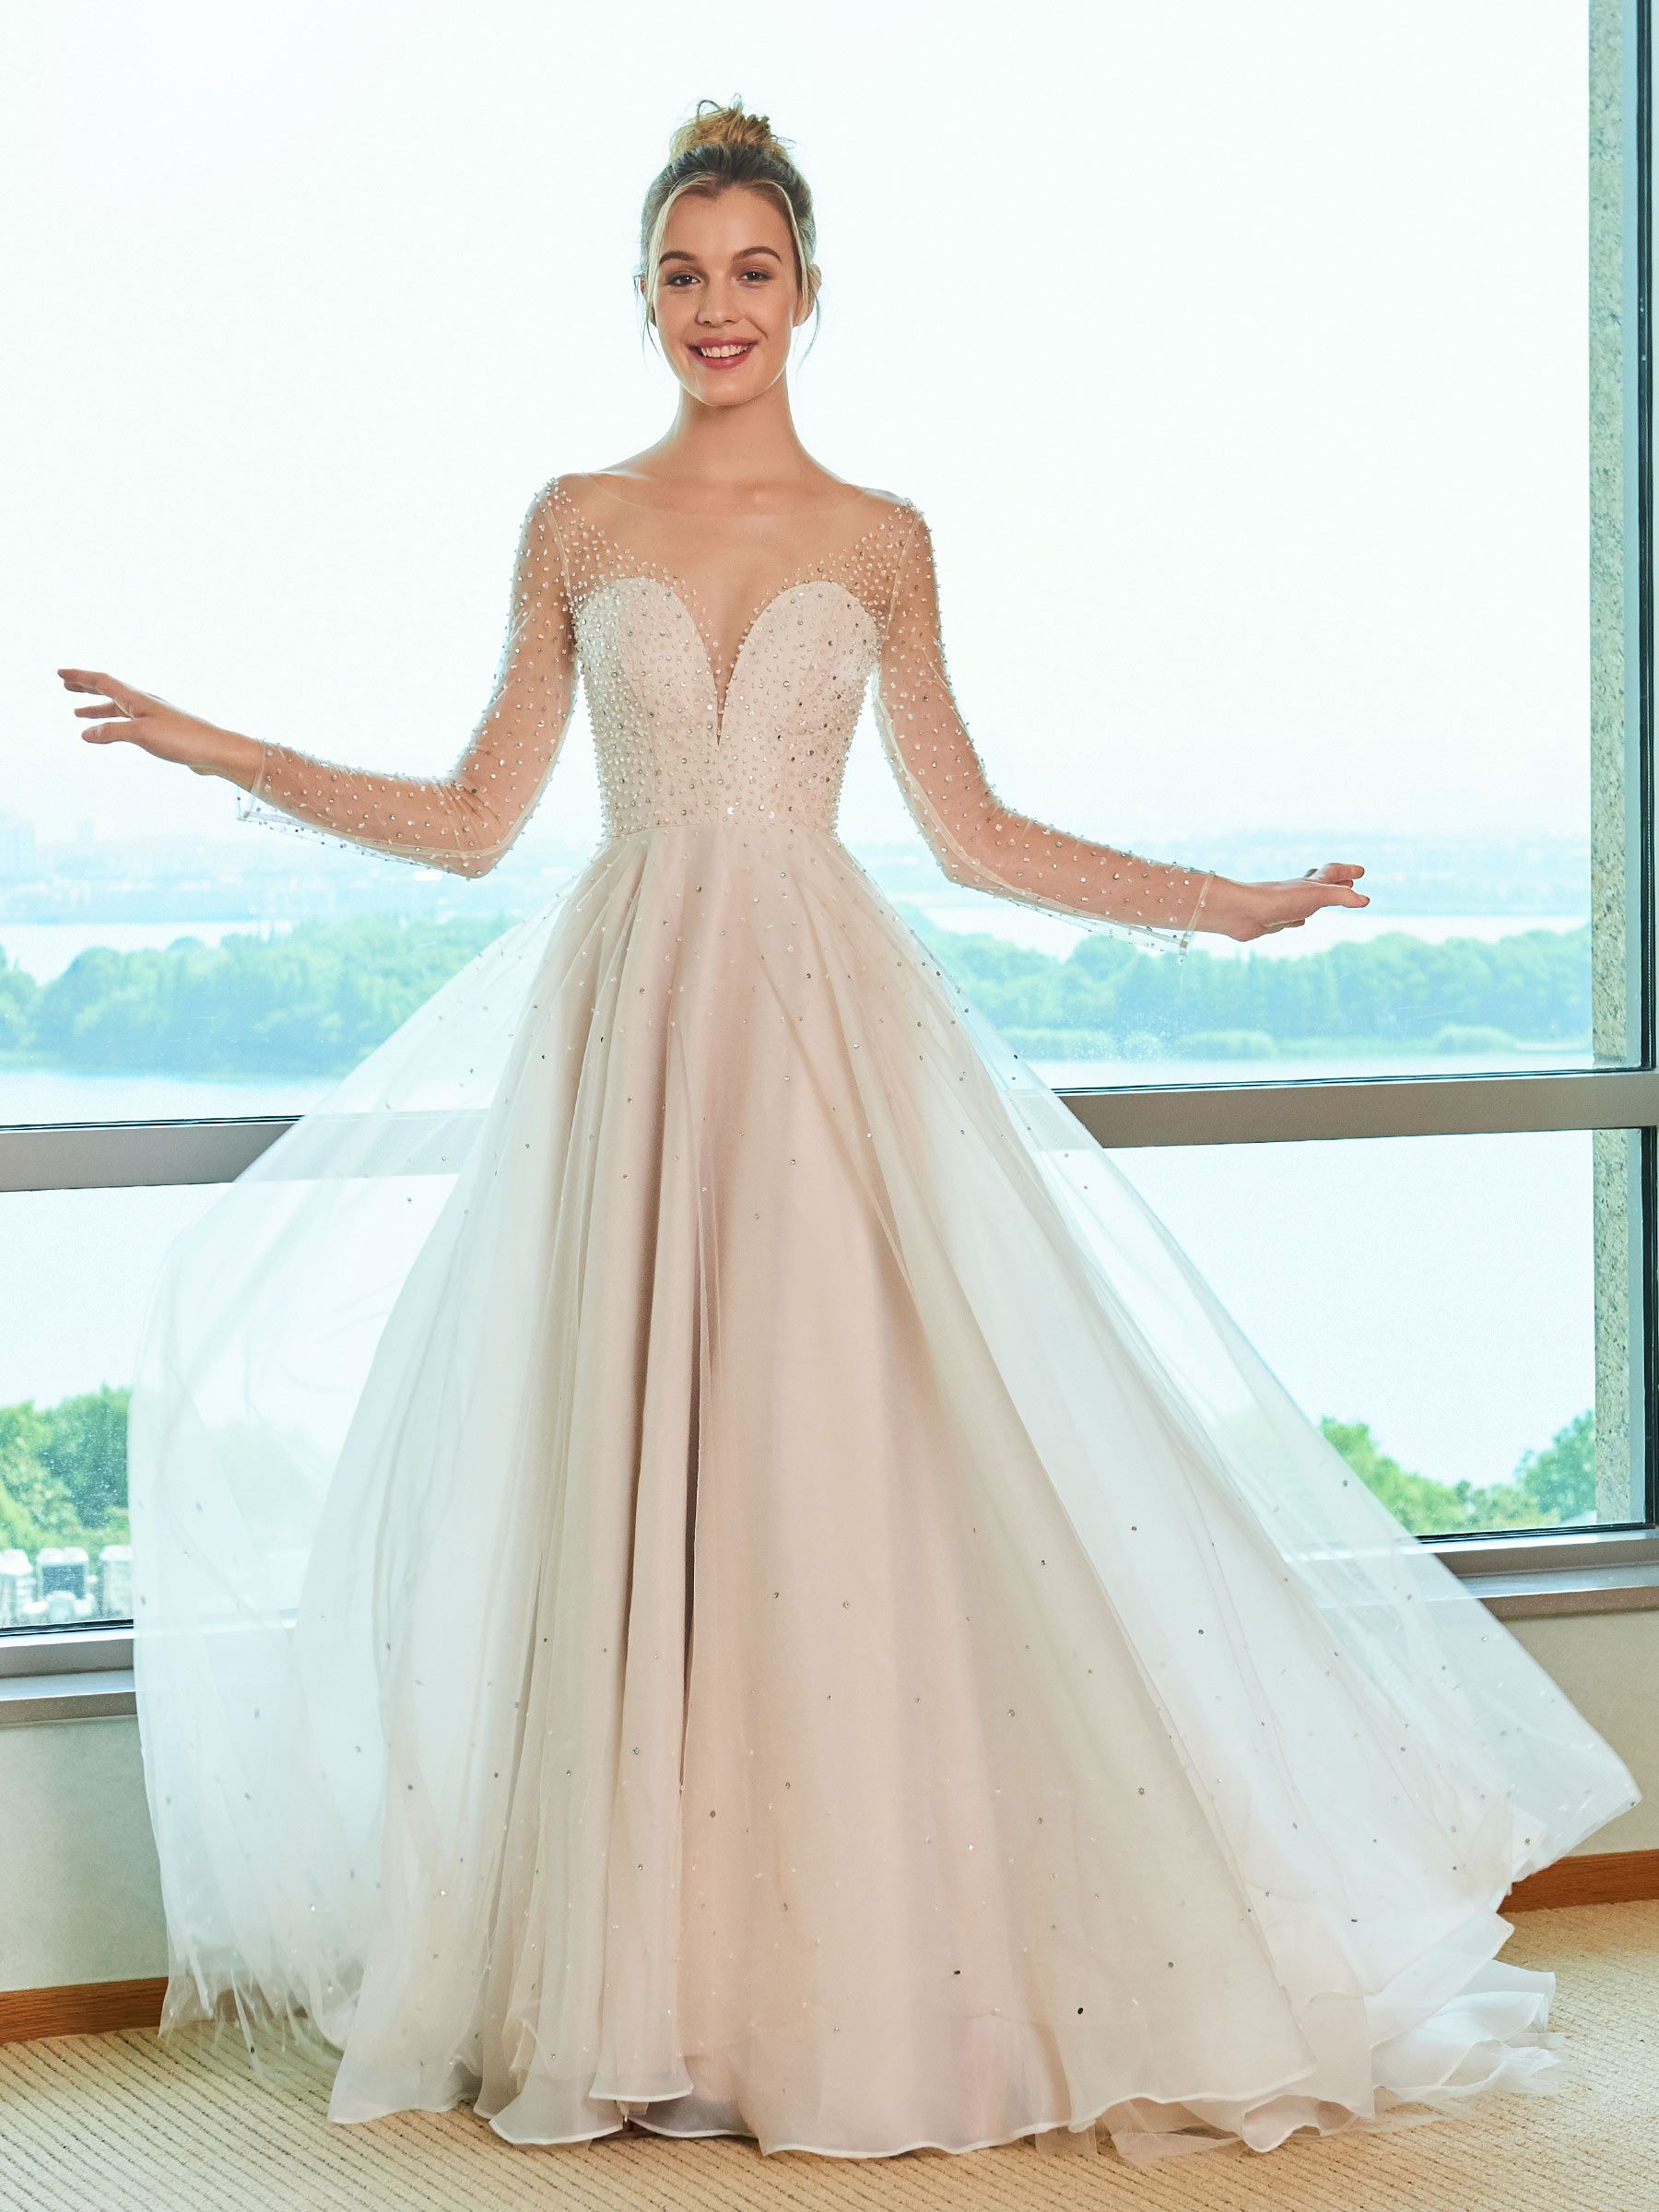 Illusion neck beading long sleeve wedding dress in married in